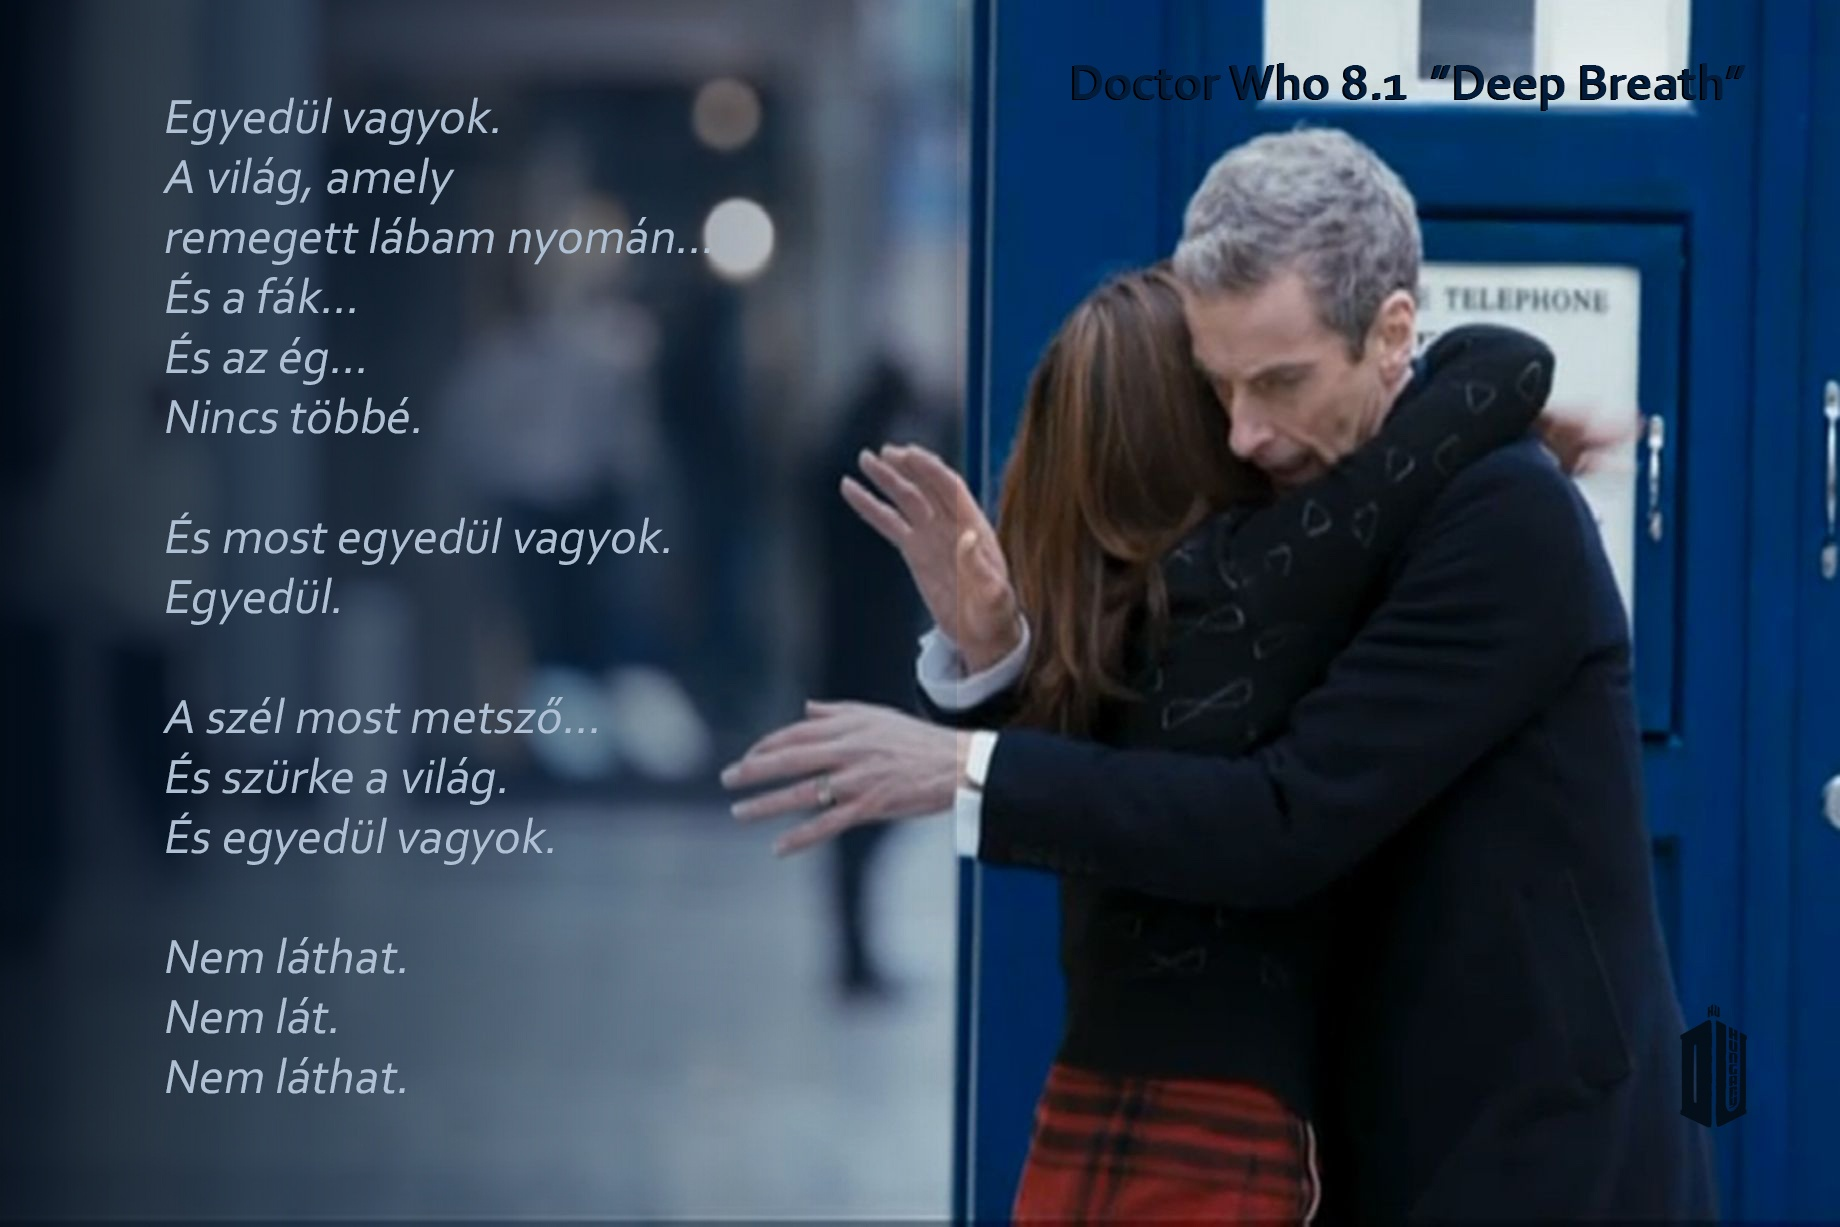 Új Doctor Who 8.1